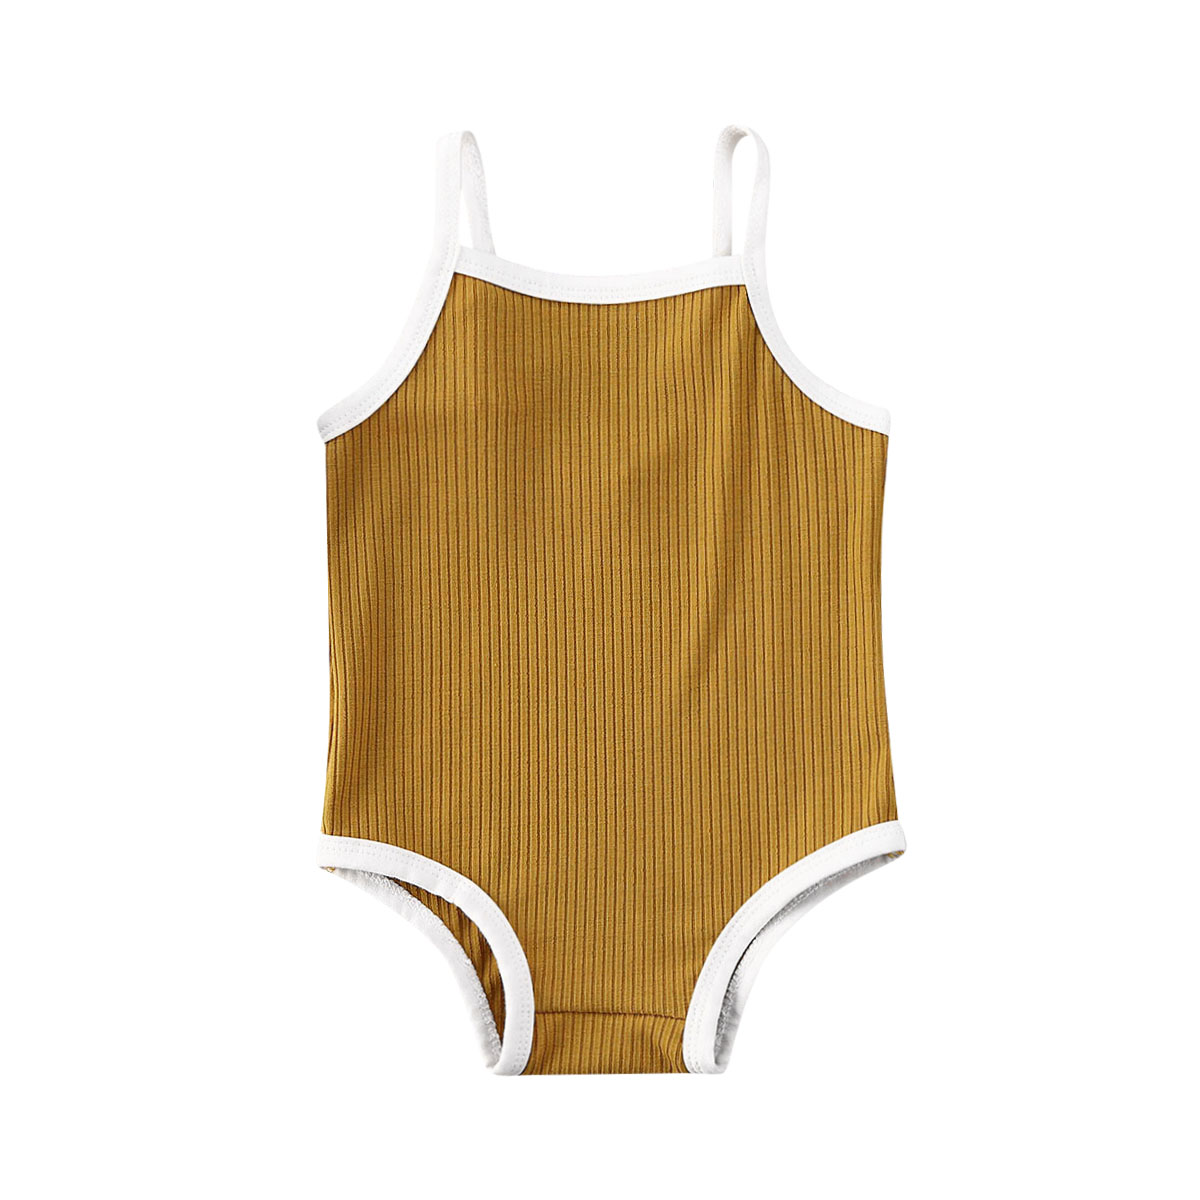 Toddler Baby Girls One Piece Suits Swimwear Swimming Clothes Bathing Suit Bikini Monokini Swimsuit